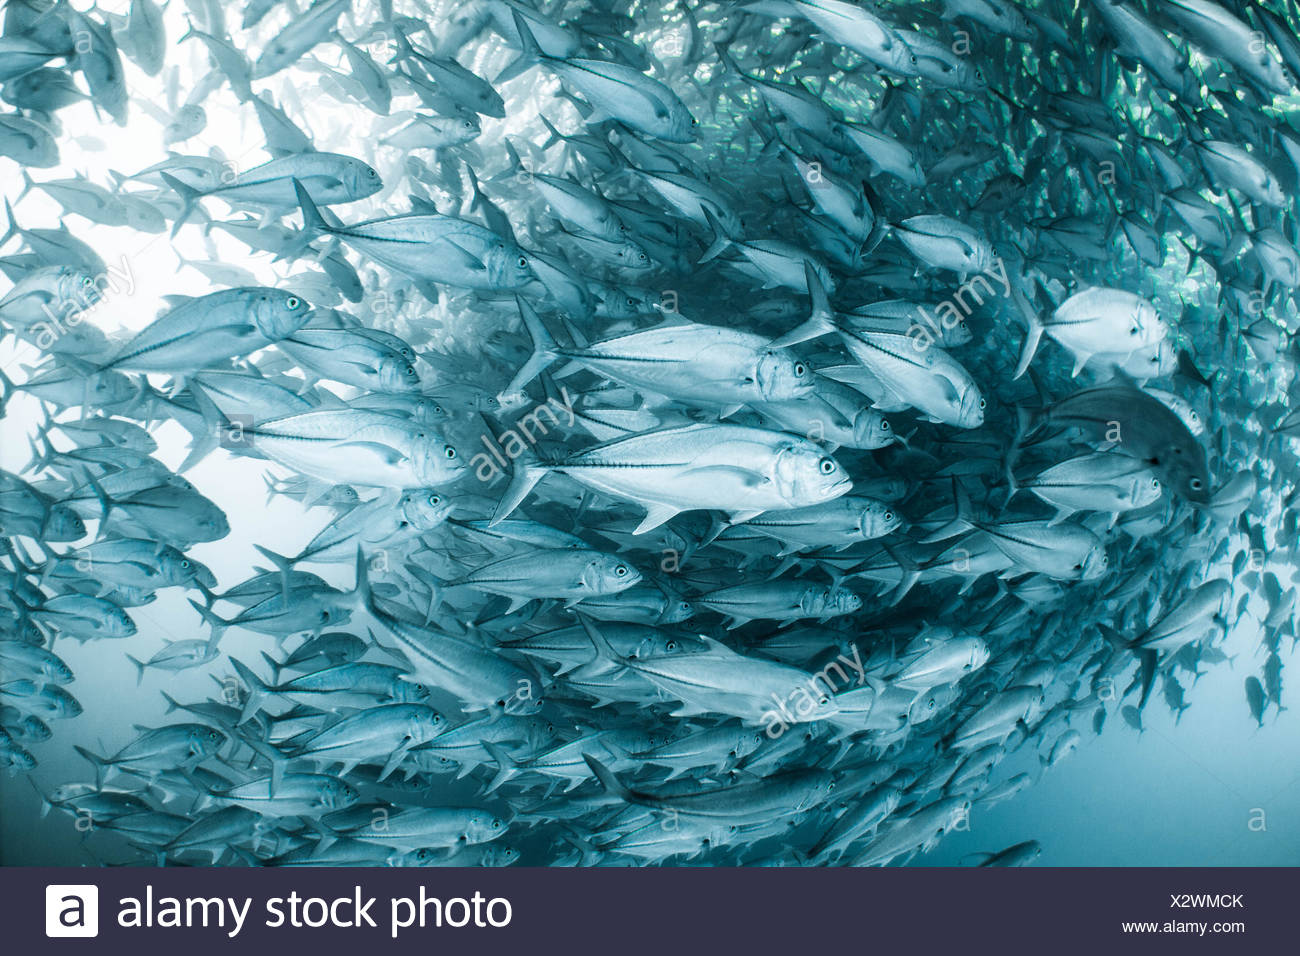 A large school of horse eye jackfish in the Cabo Pulmo Nature Reserve in Baja, Mexico. - Stock Image